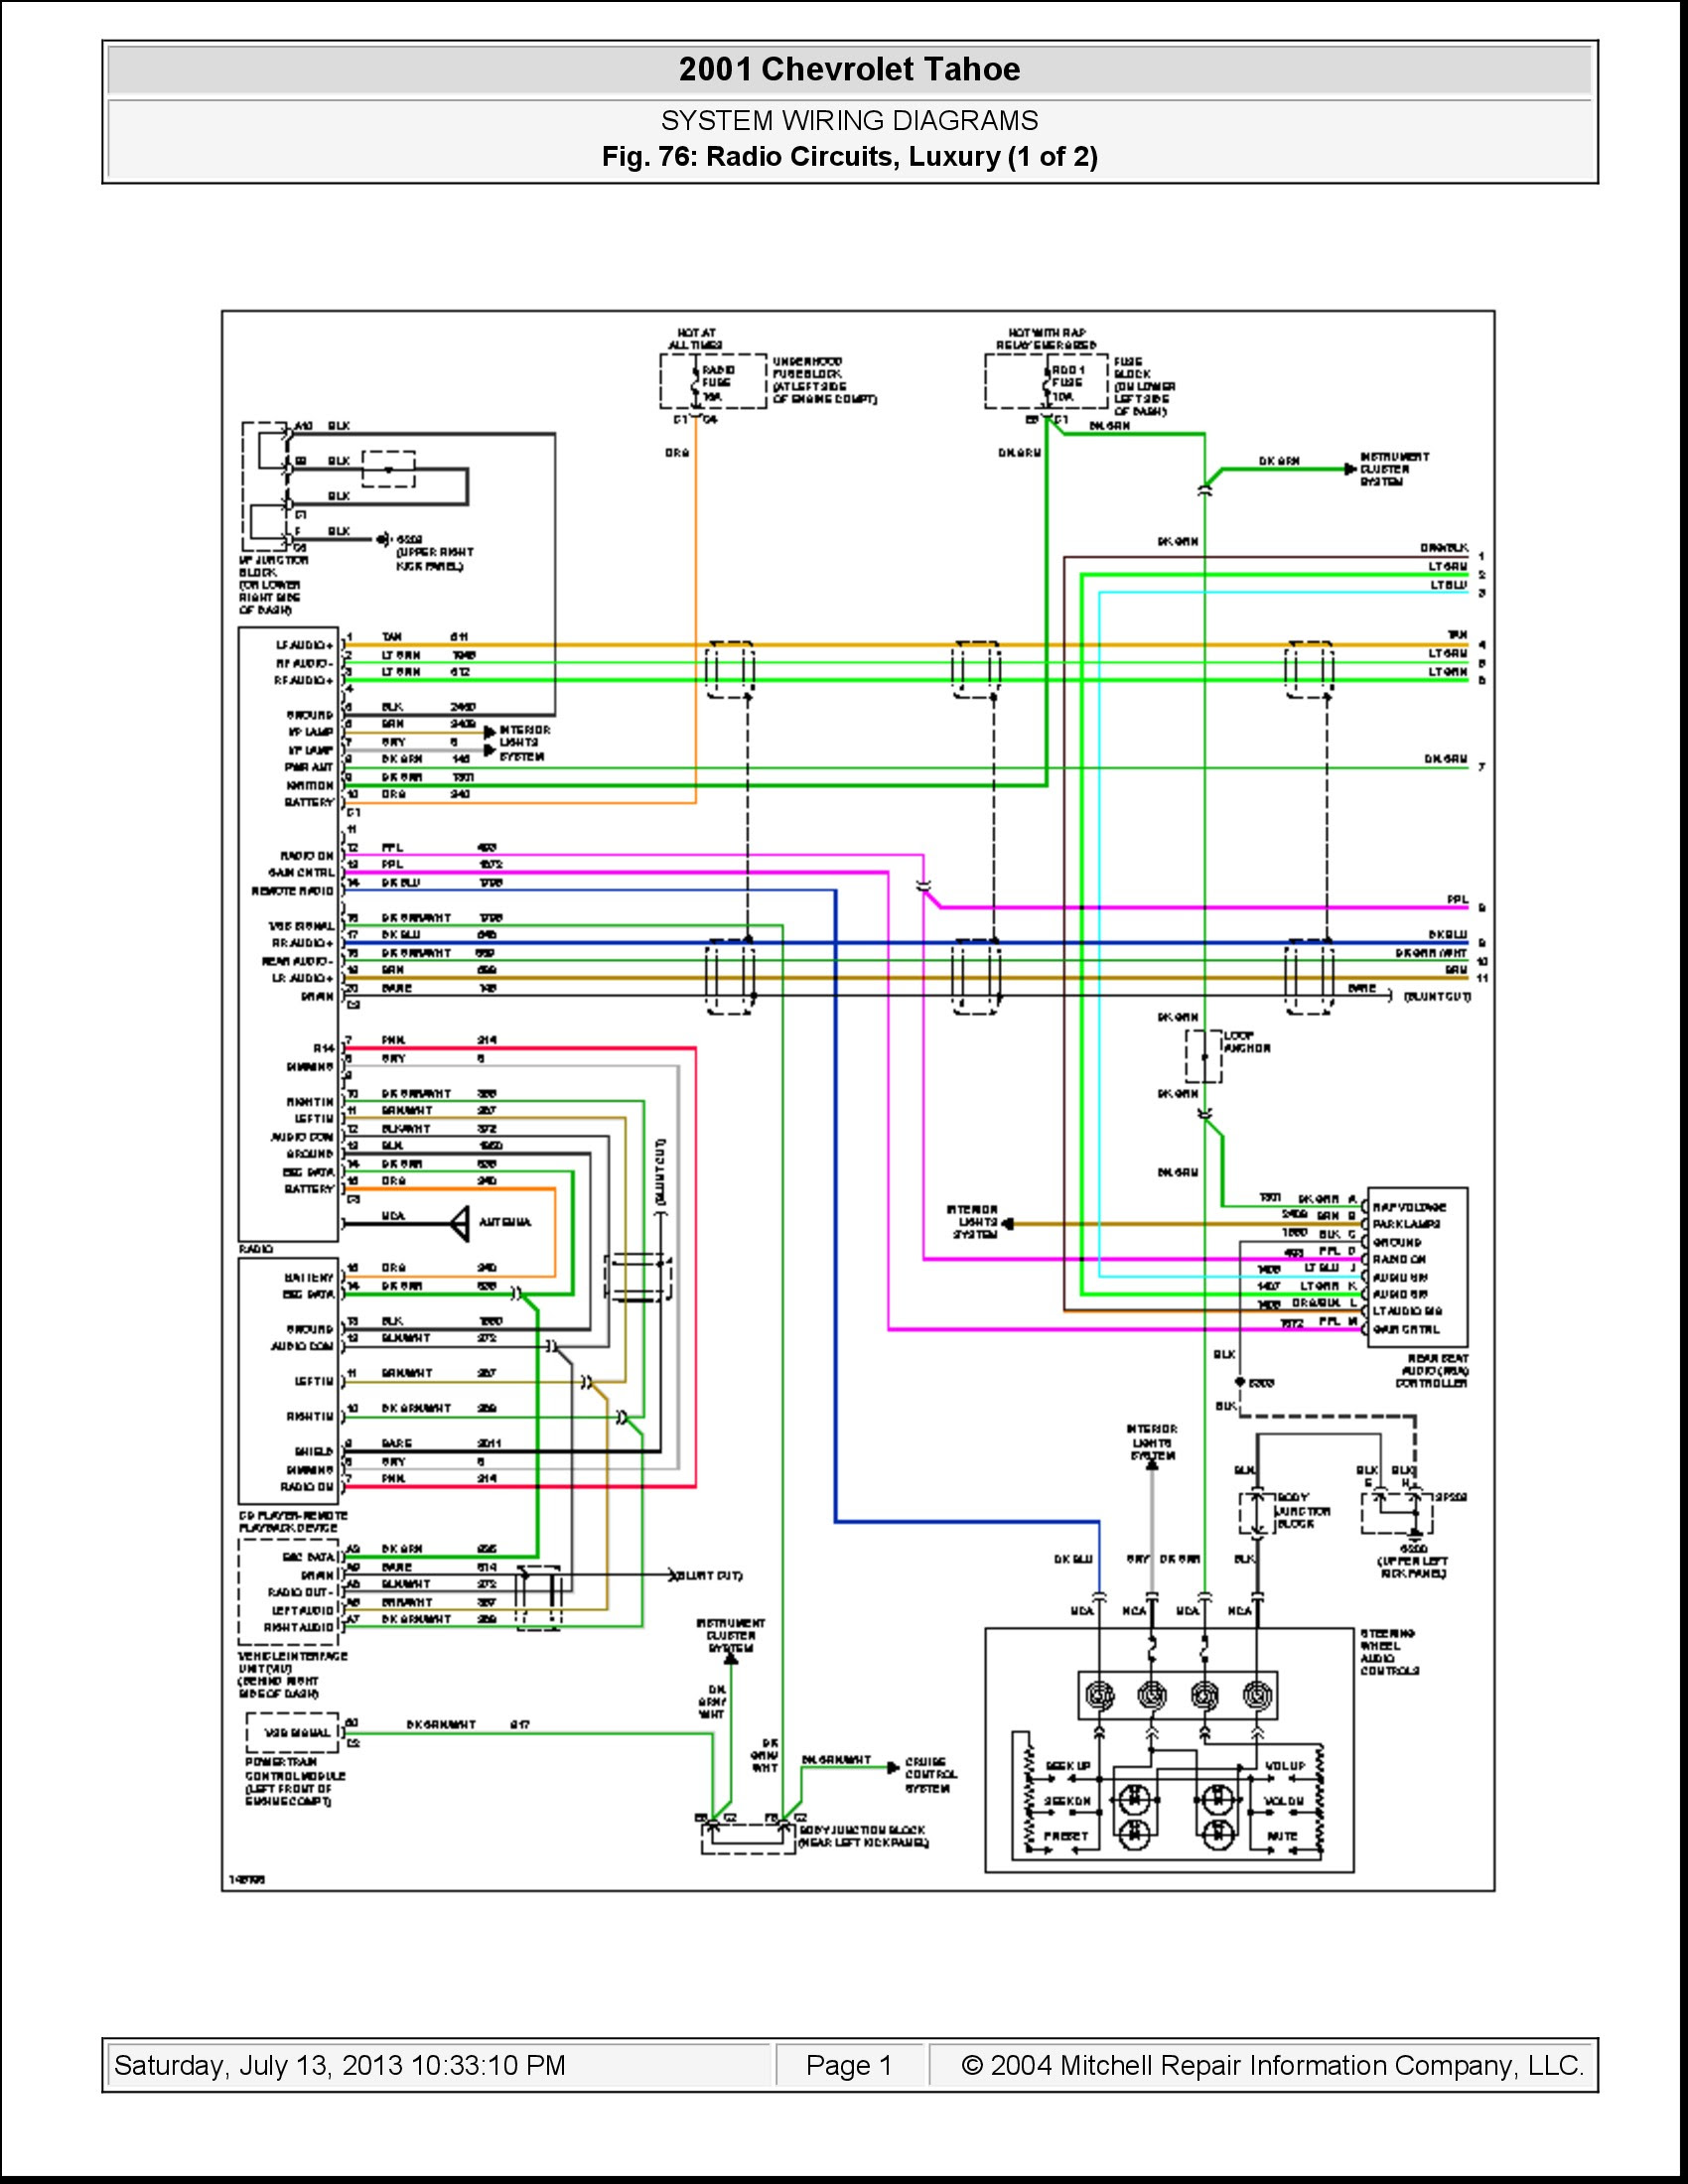 98 Camry Cd Player Wiring Diagram 2013 Ford F 150 Fuse Box Diagram Bege Wiring Diagram